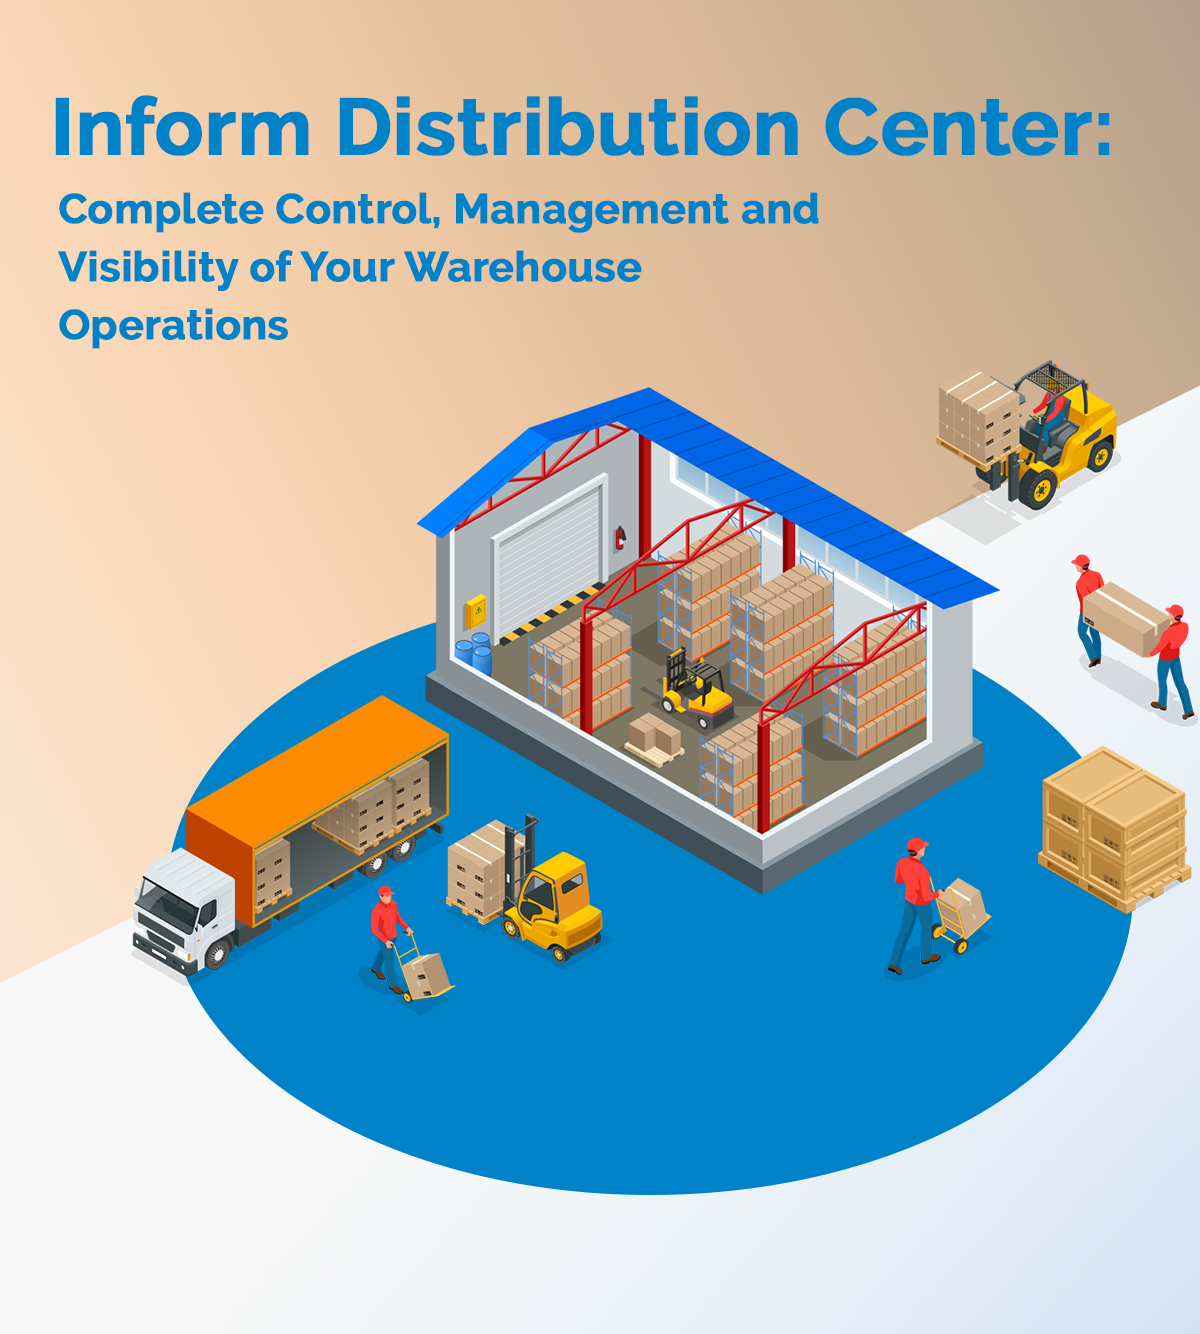 Inform Distribution Center: Wireless Warehousing Done Right